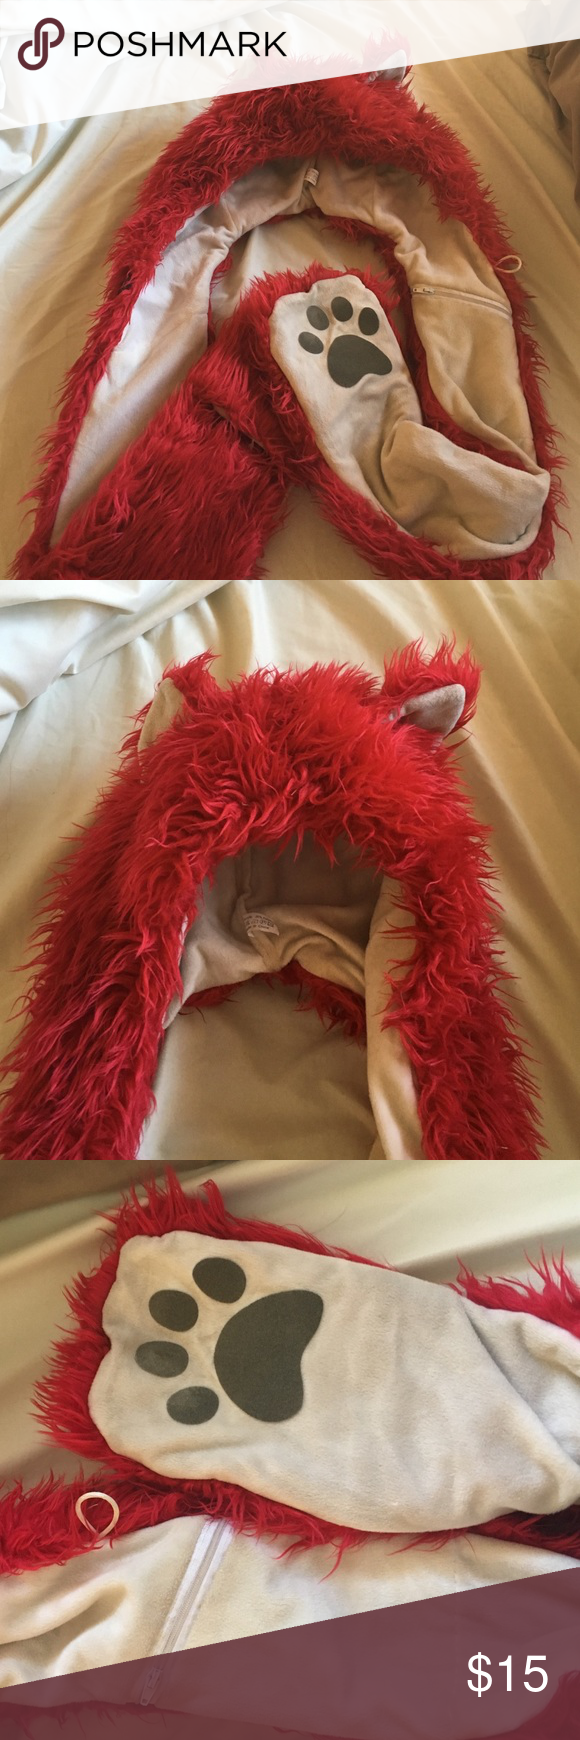 Red iheartraves spirit hood Red iheartraves spirit hood. Lightly used. Will wash upon purchase. Perfect condition. Iheartraves Accessories